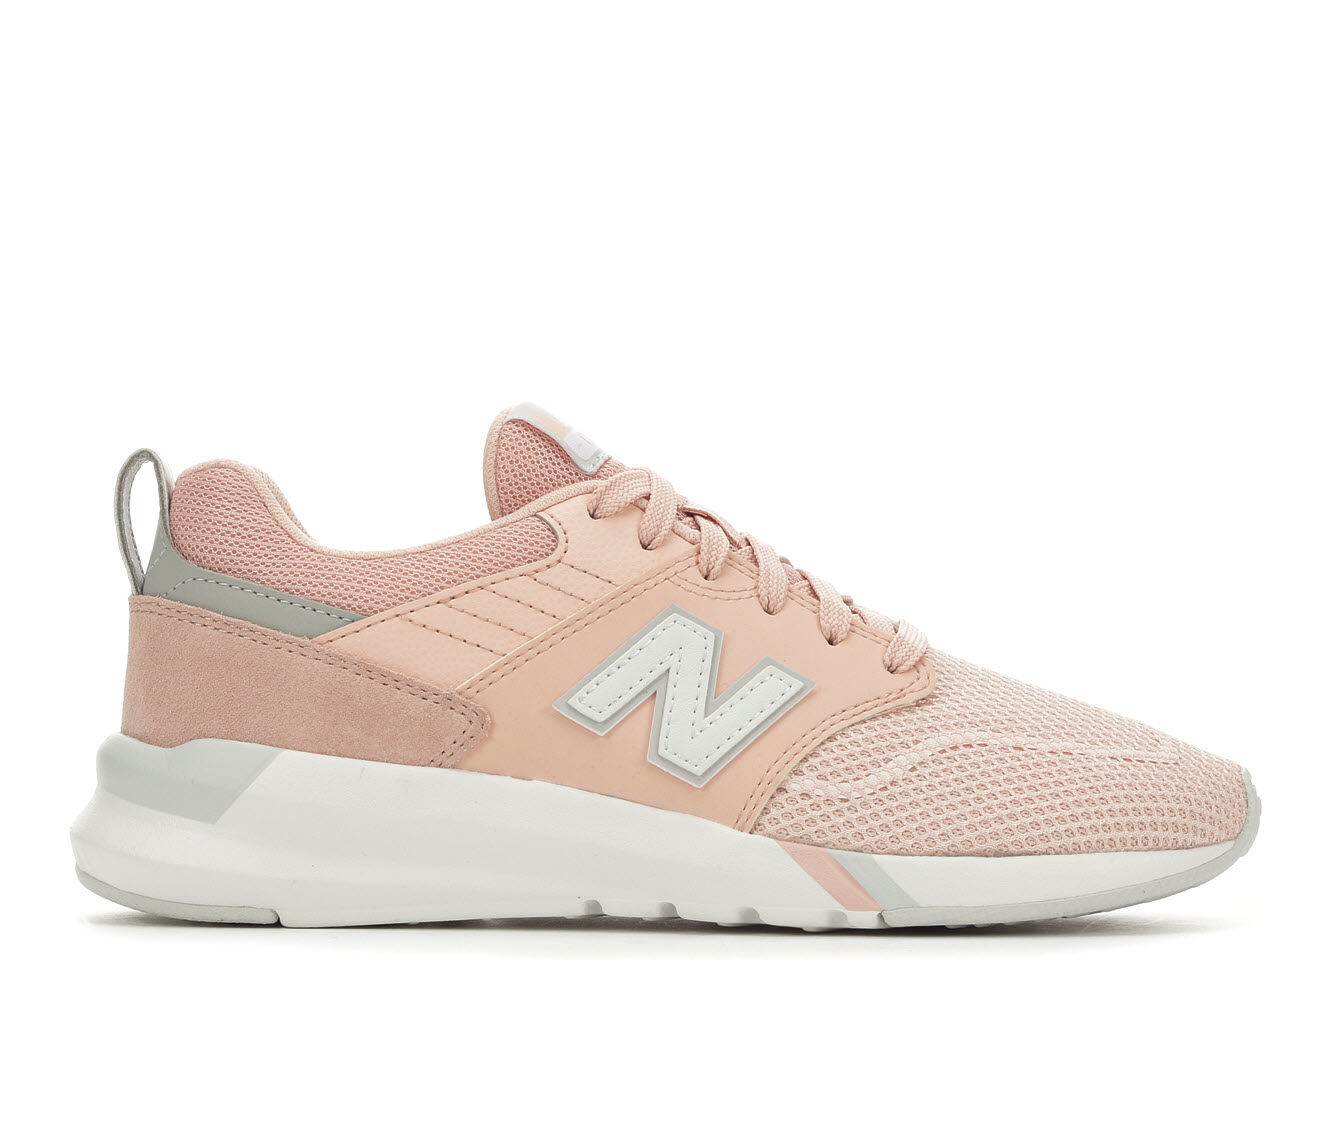 Women's New Balance 009 Retro Sneakers Pink/Buttermilk